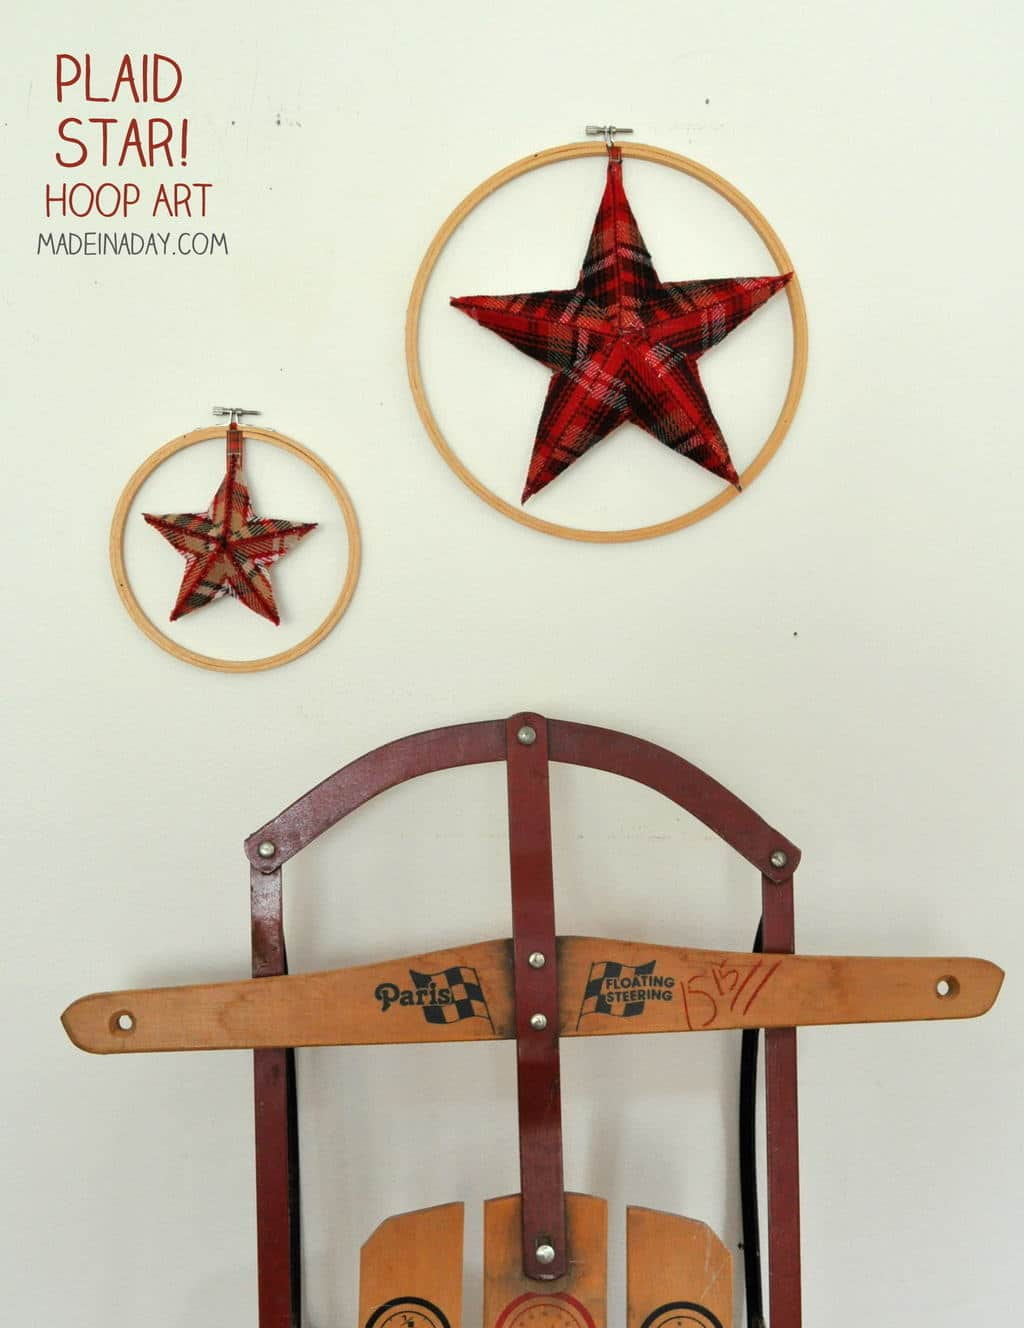 Holiday Plaid Star Embroidery Hoop Art madeinaday.com